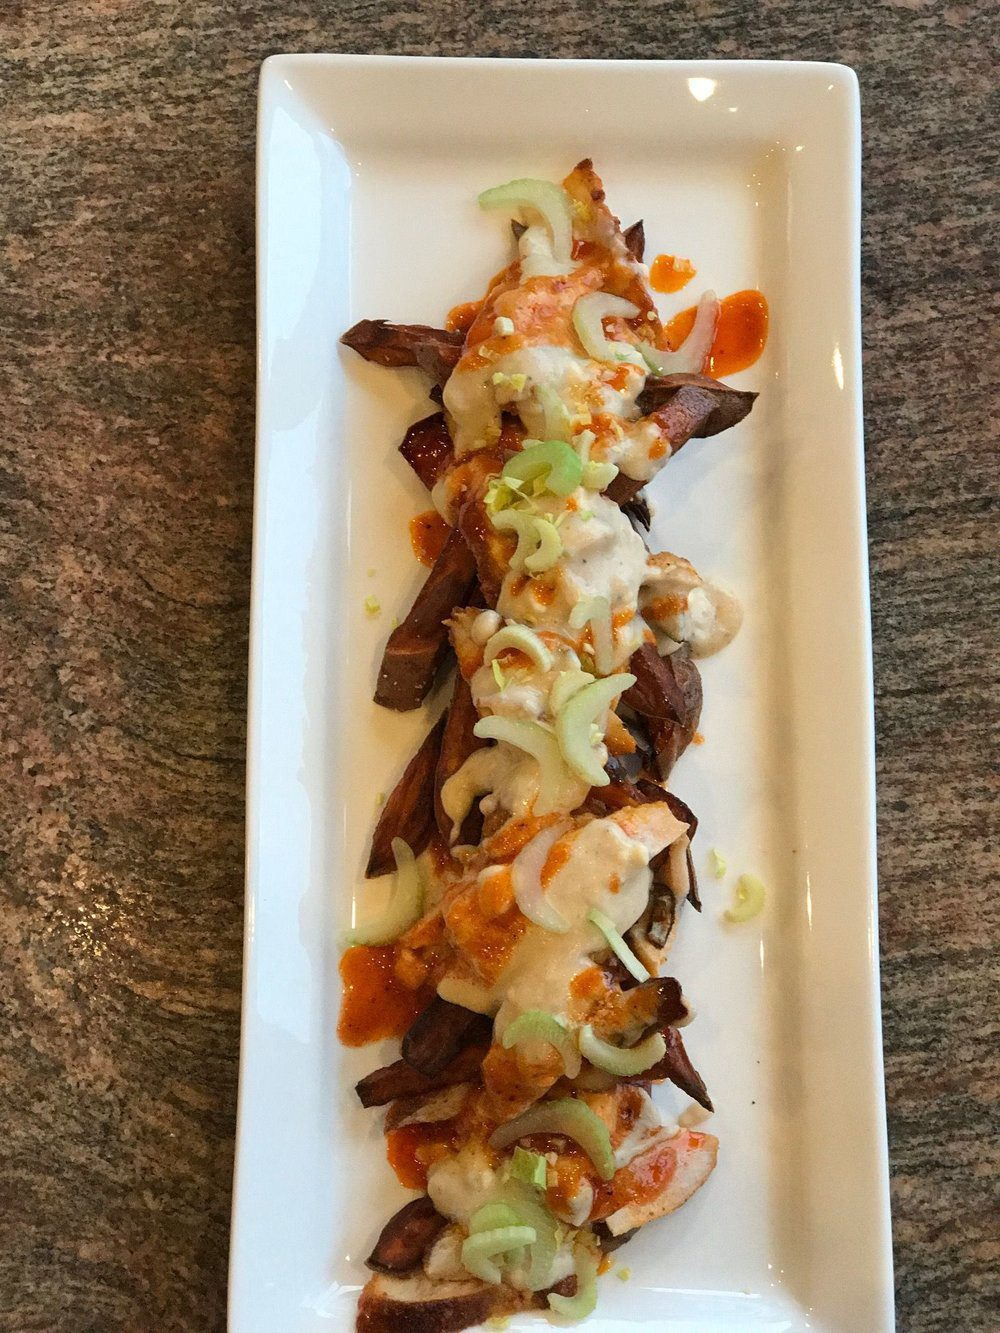 Sweet Potato Fries with Crispy Buffalo Chicken, topped with Blue Cheese Gravy.